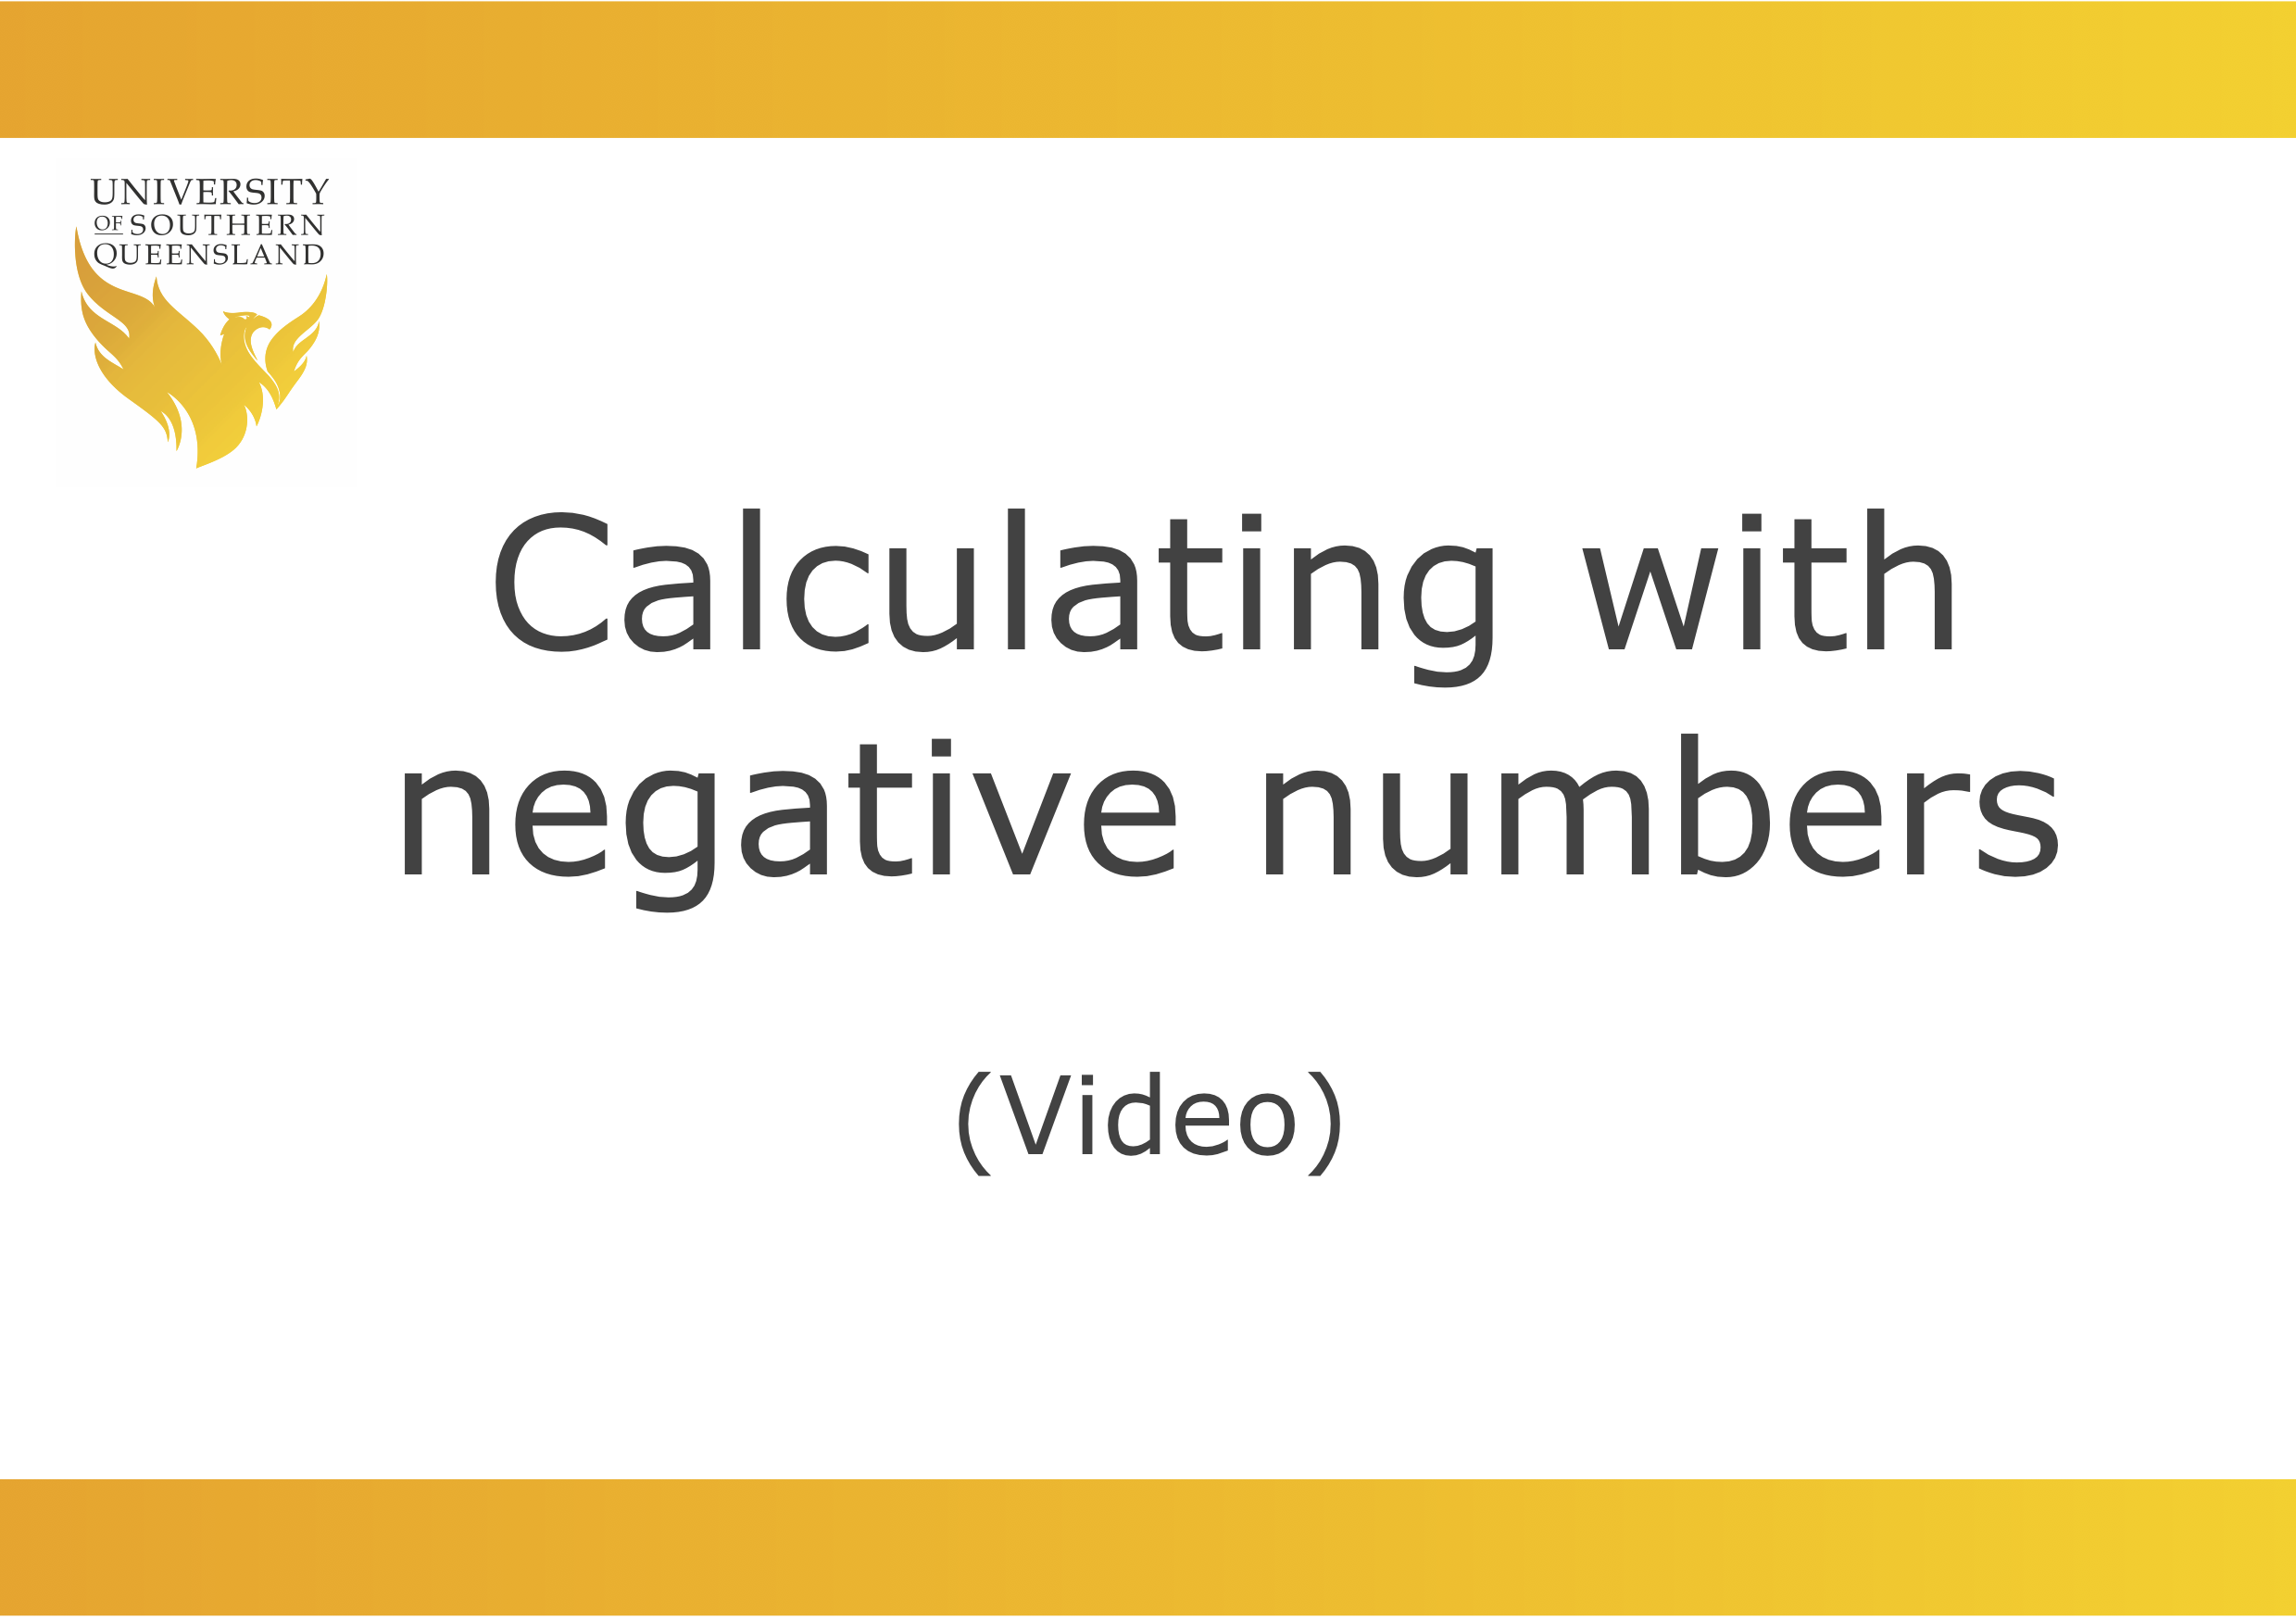 Video link for Calculating with negative numbers.